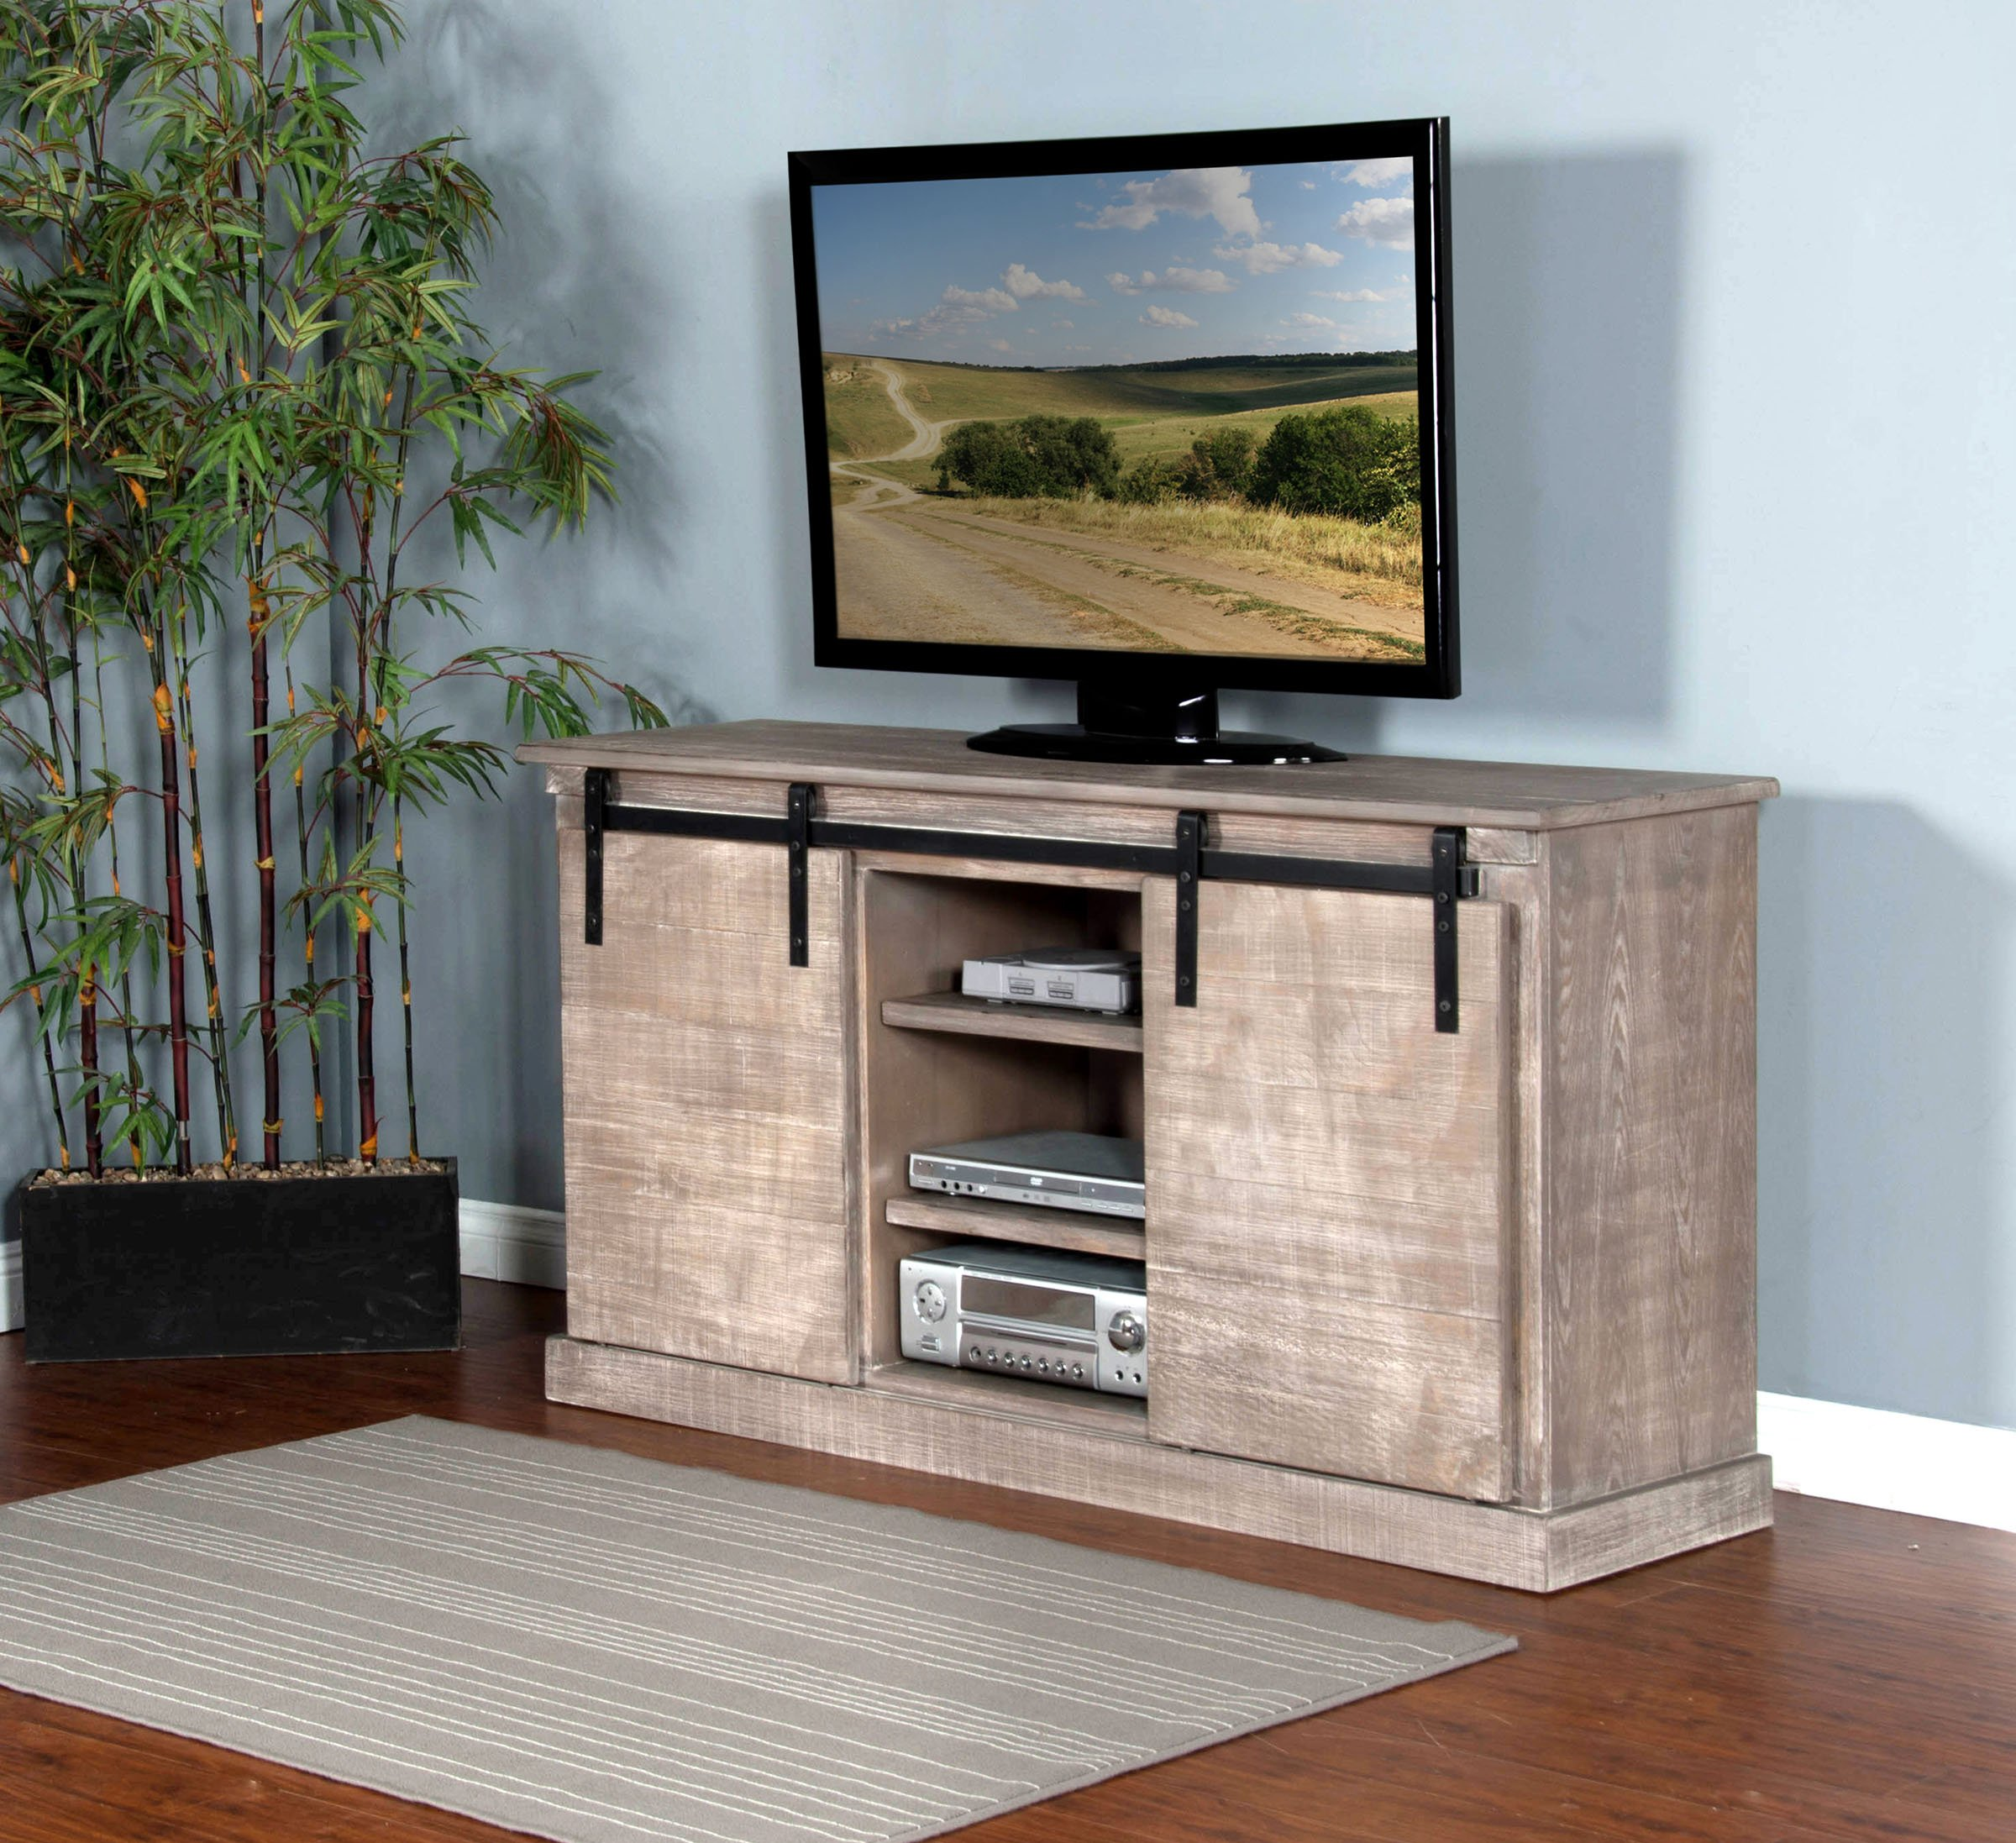 62 inch rustic distressed gray tv stand - Rustic Center